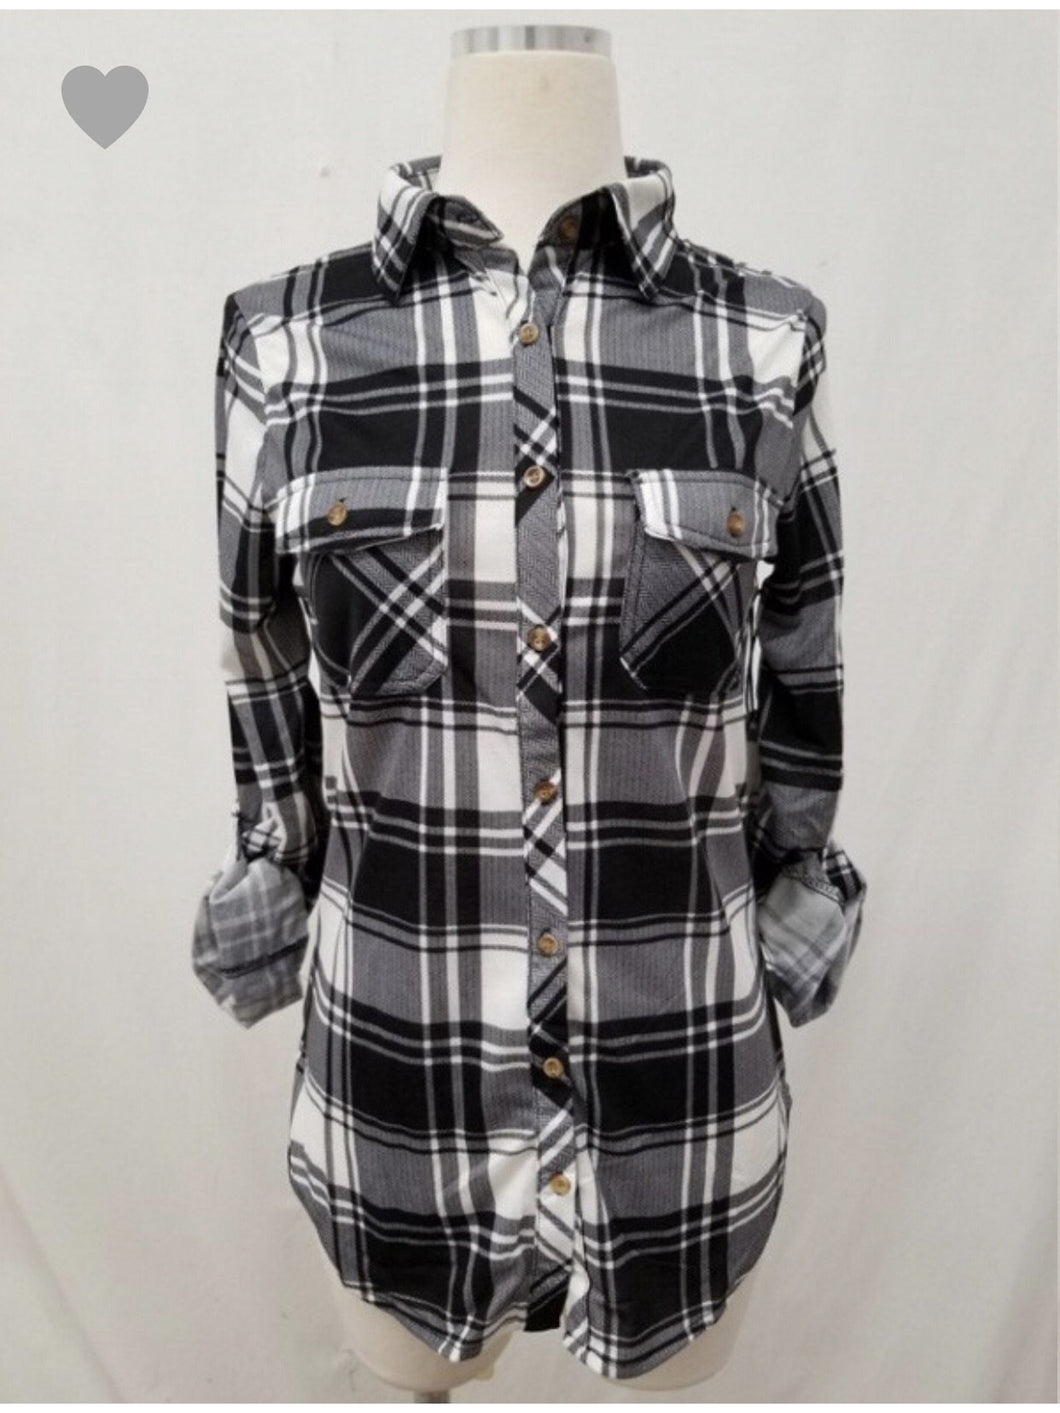 THE CATHY STRETCH PLAID BUTTON UP